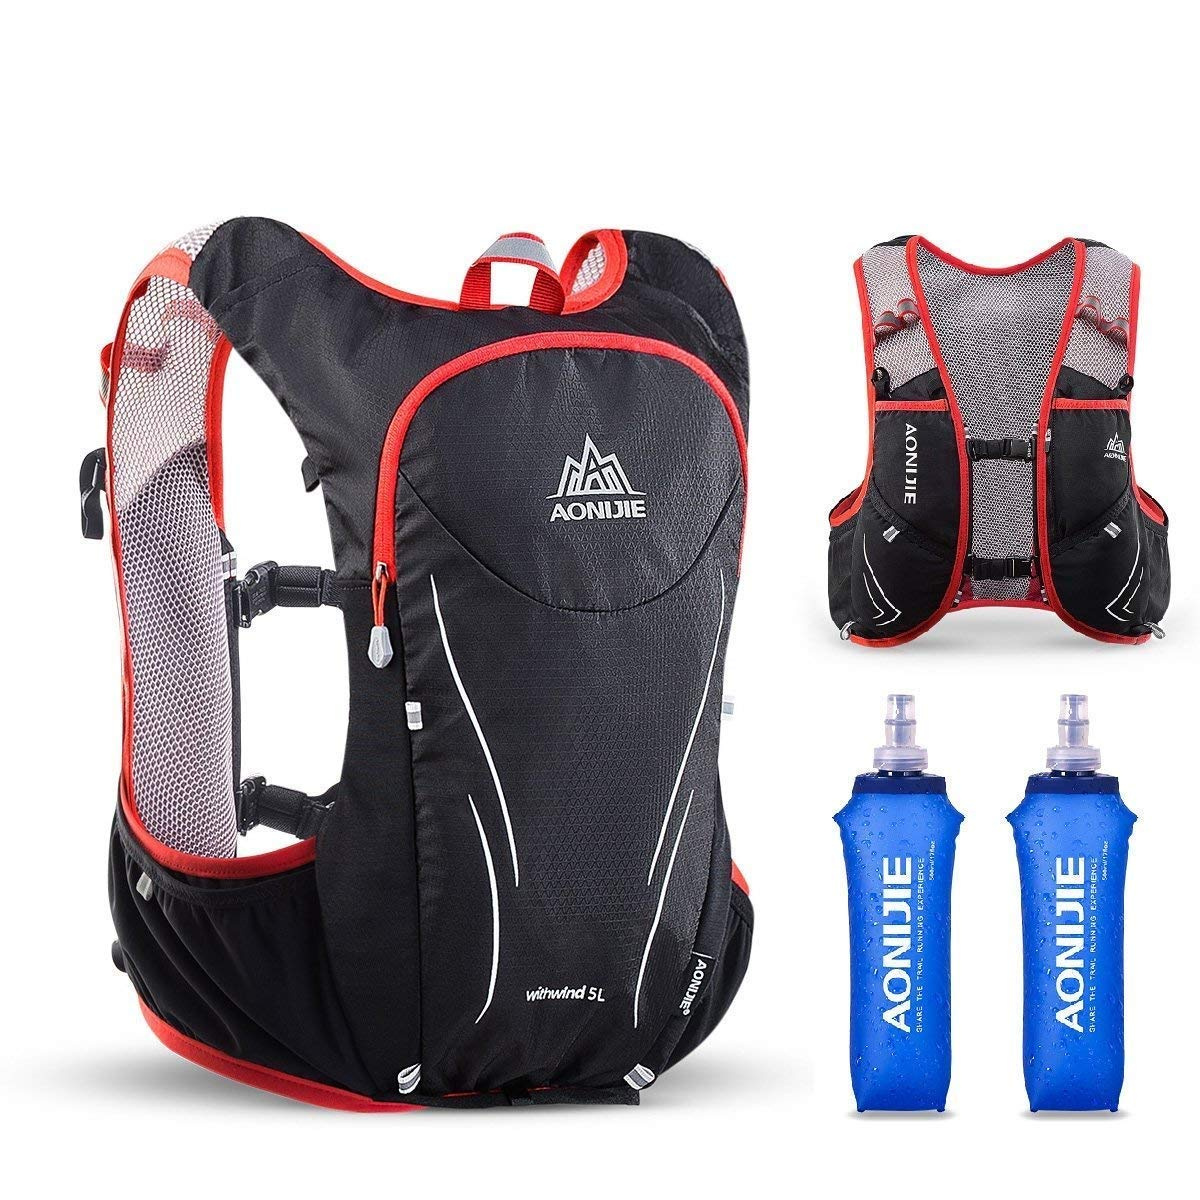 Azarxis Hydration Vests for Running Women Men Race Running Vest Hydration Trail Running Water Vest Marathon Backpack Ultra Pack 5L for Cycling Runner